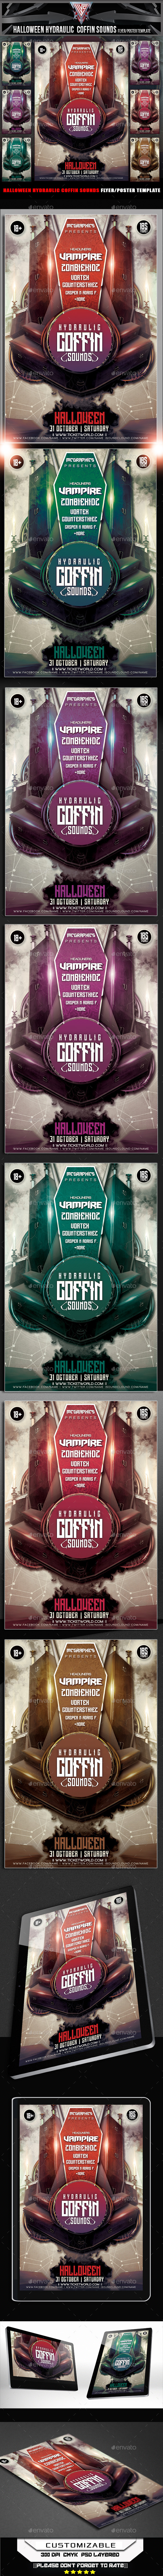 Halloween Hydraulic Coffin Sounds Flyer Template - Flyers Print Templates